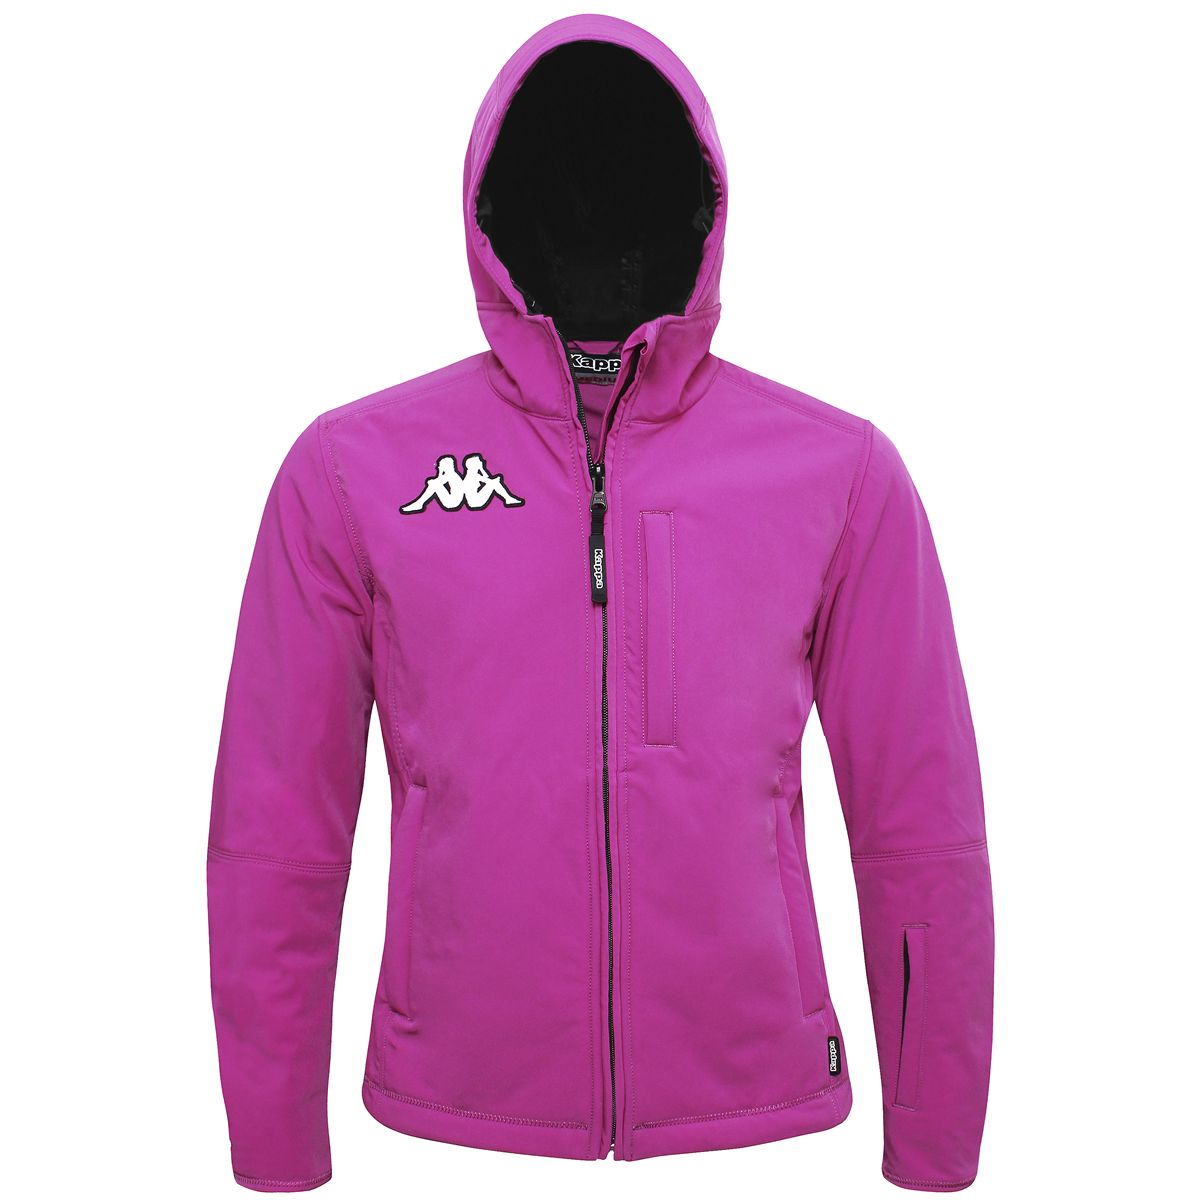 Kappa Mid Jacket Ski sport Man Woman